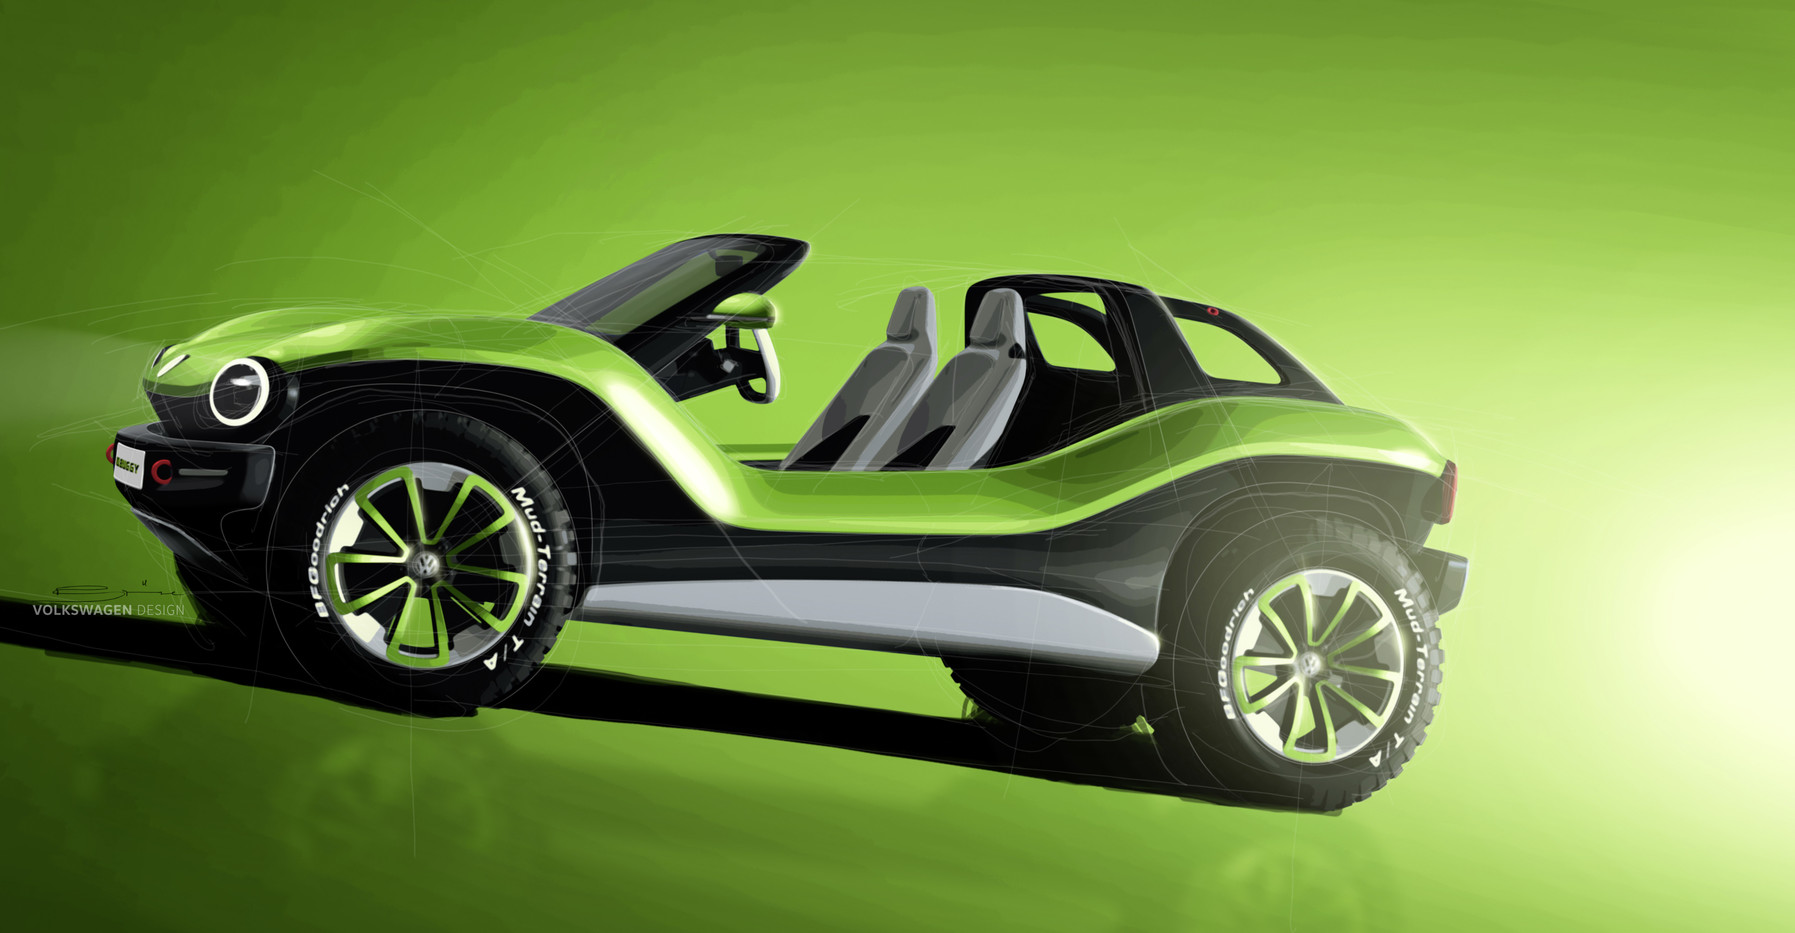 Volkswagen I.D. Buggy green background